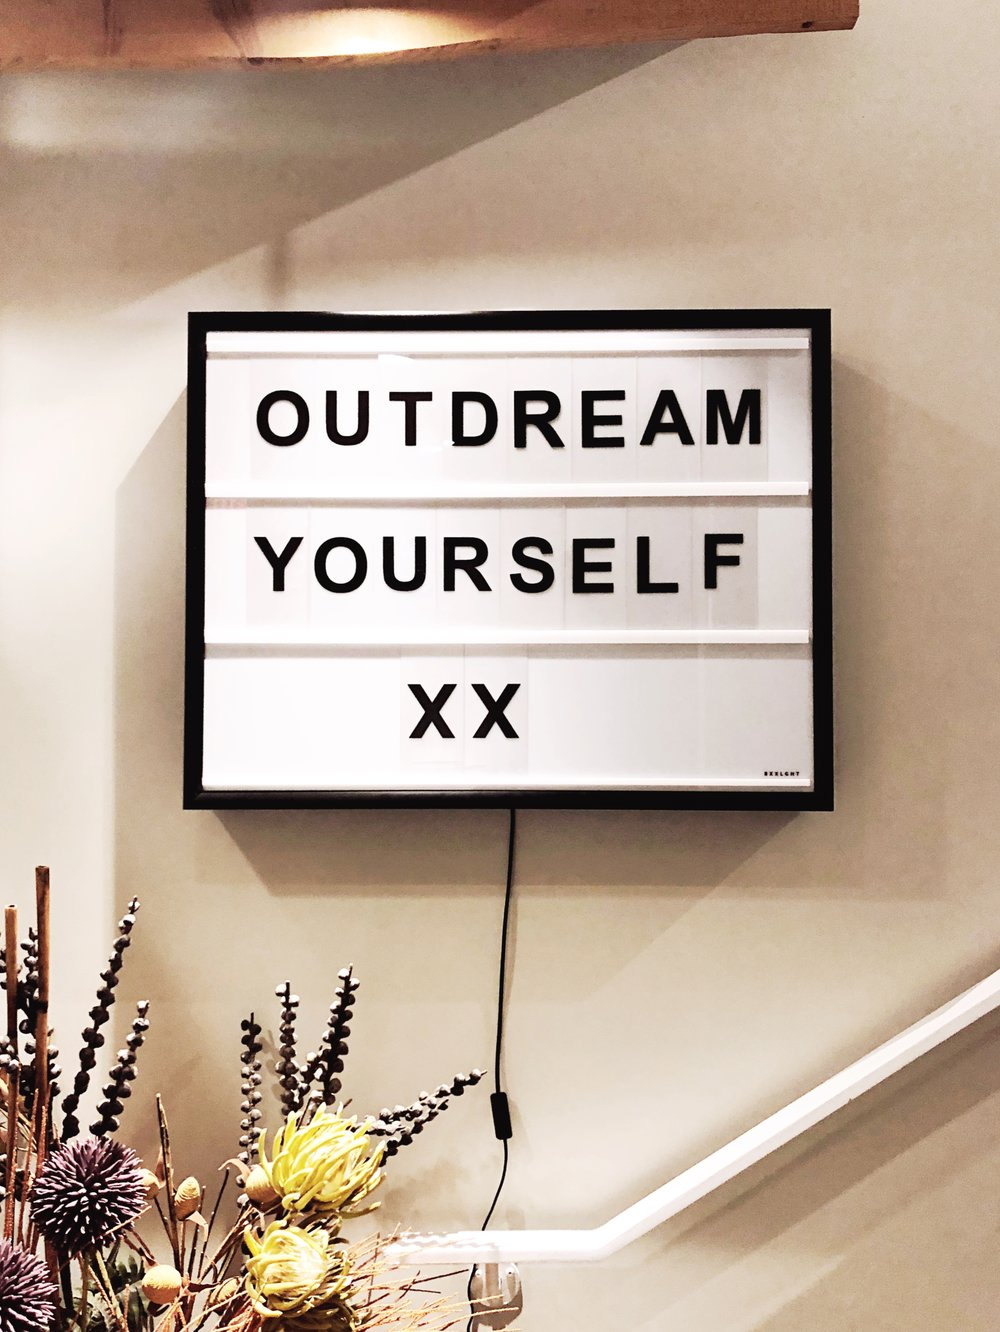 Junction 9 Yoga Studio November 2017 Letterboard: Outdream Yourself xx